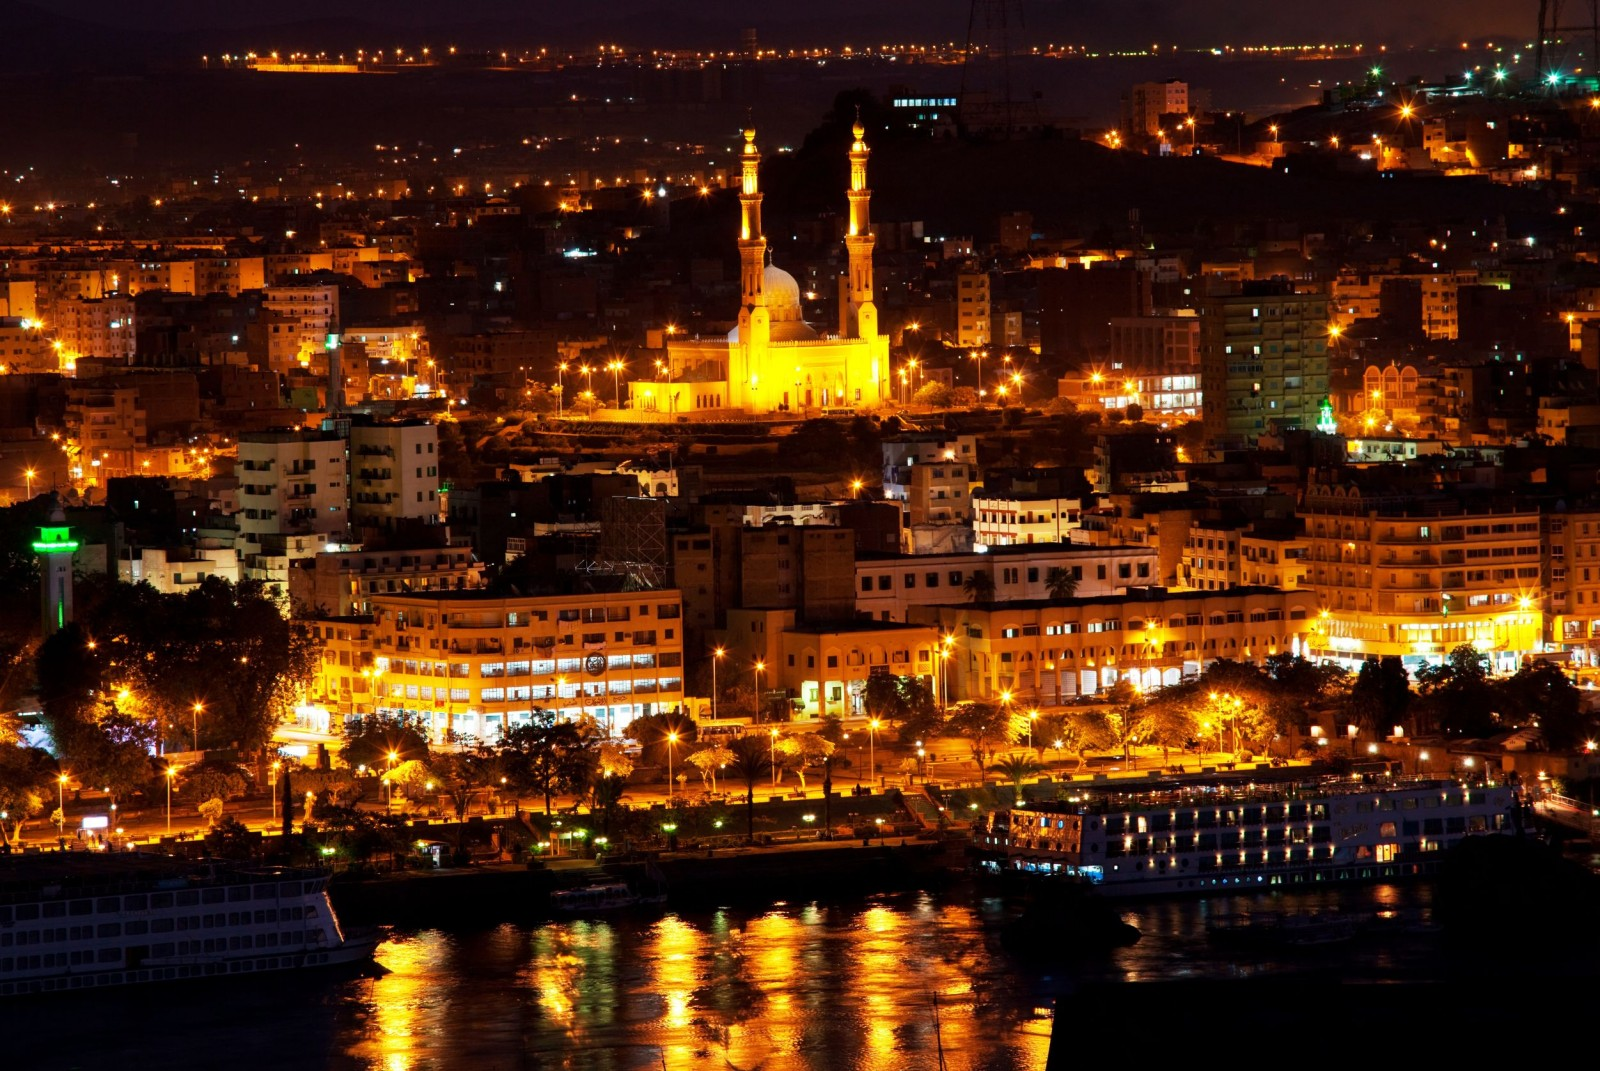 Aswan at night